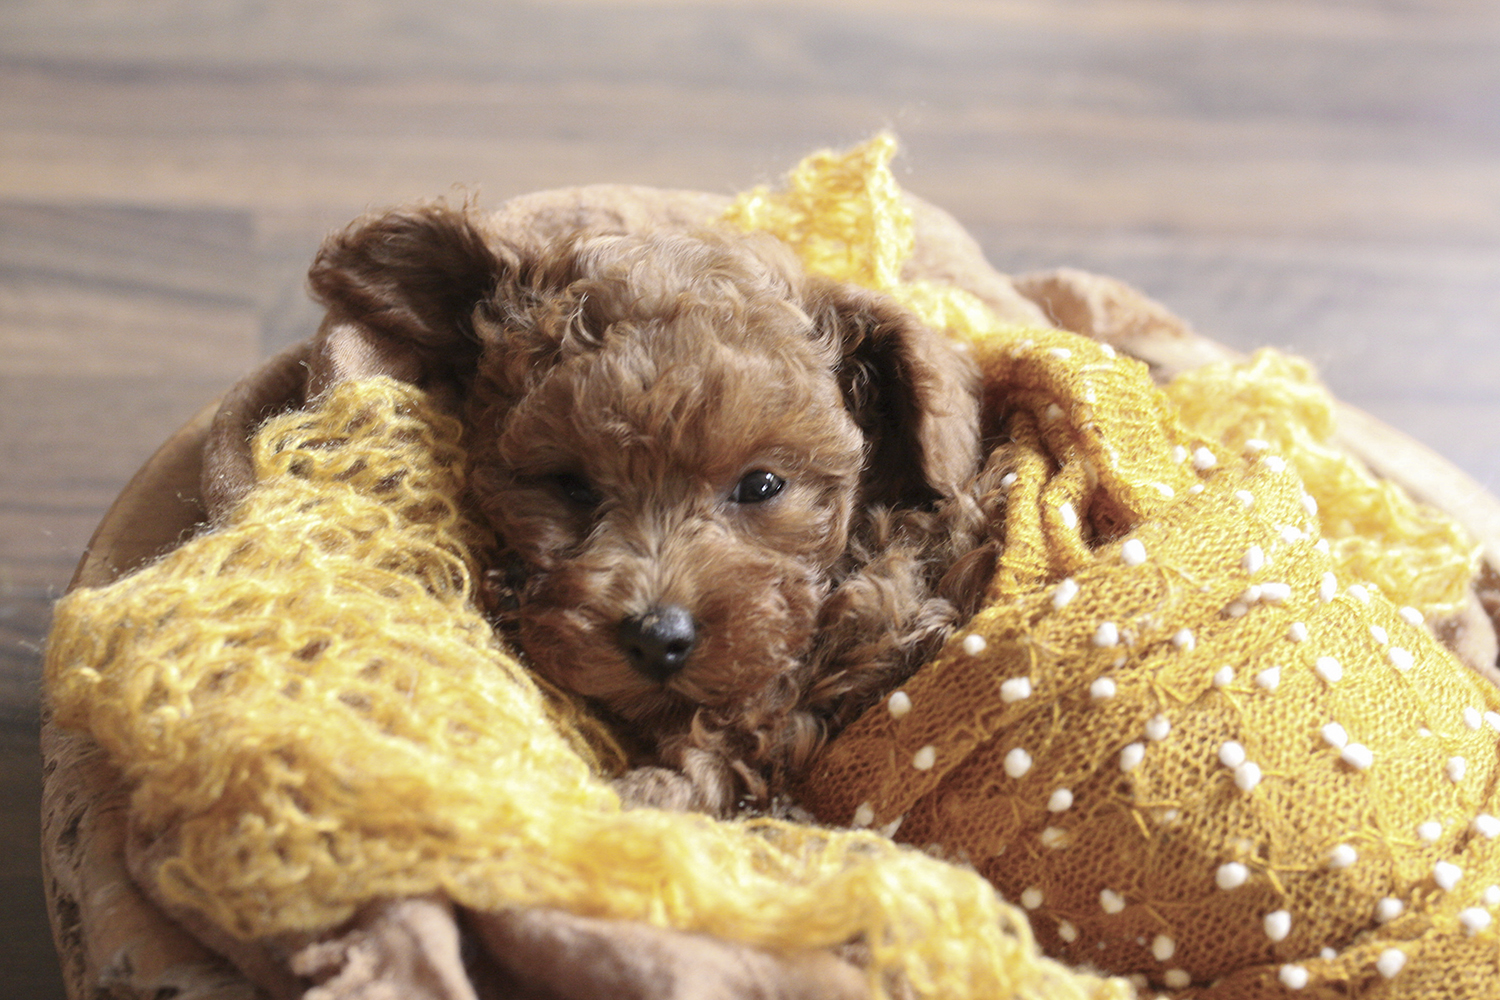 Newborn puppy in wooden bowl with mustard wraps and layers and blankets on wooden floor